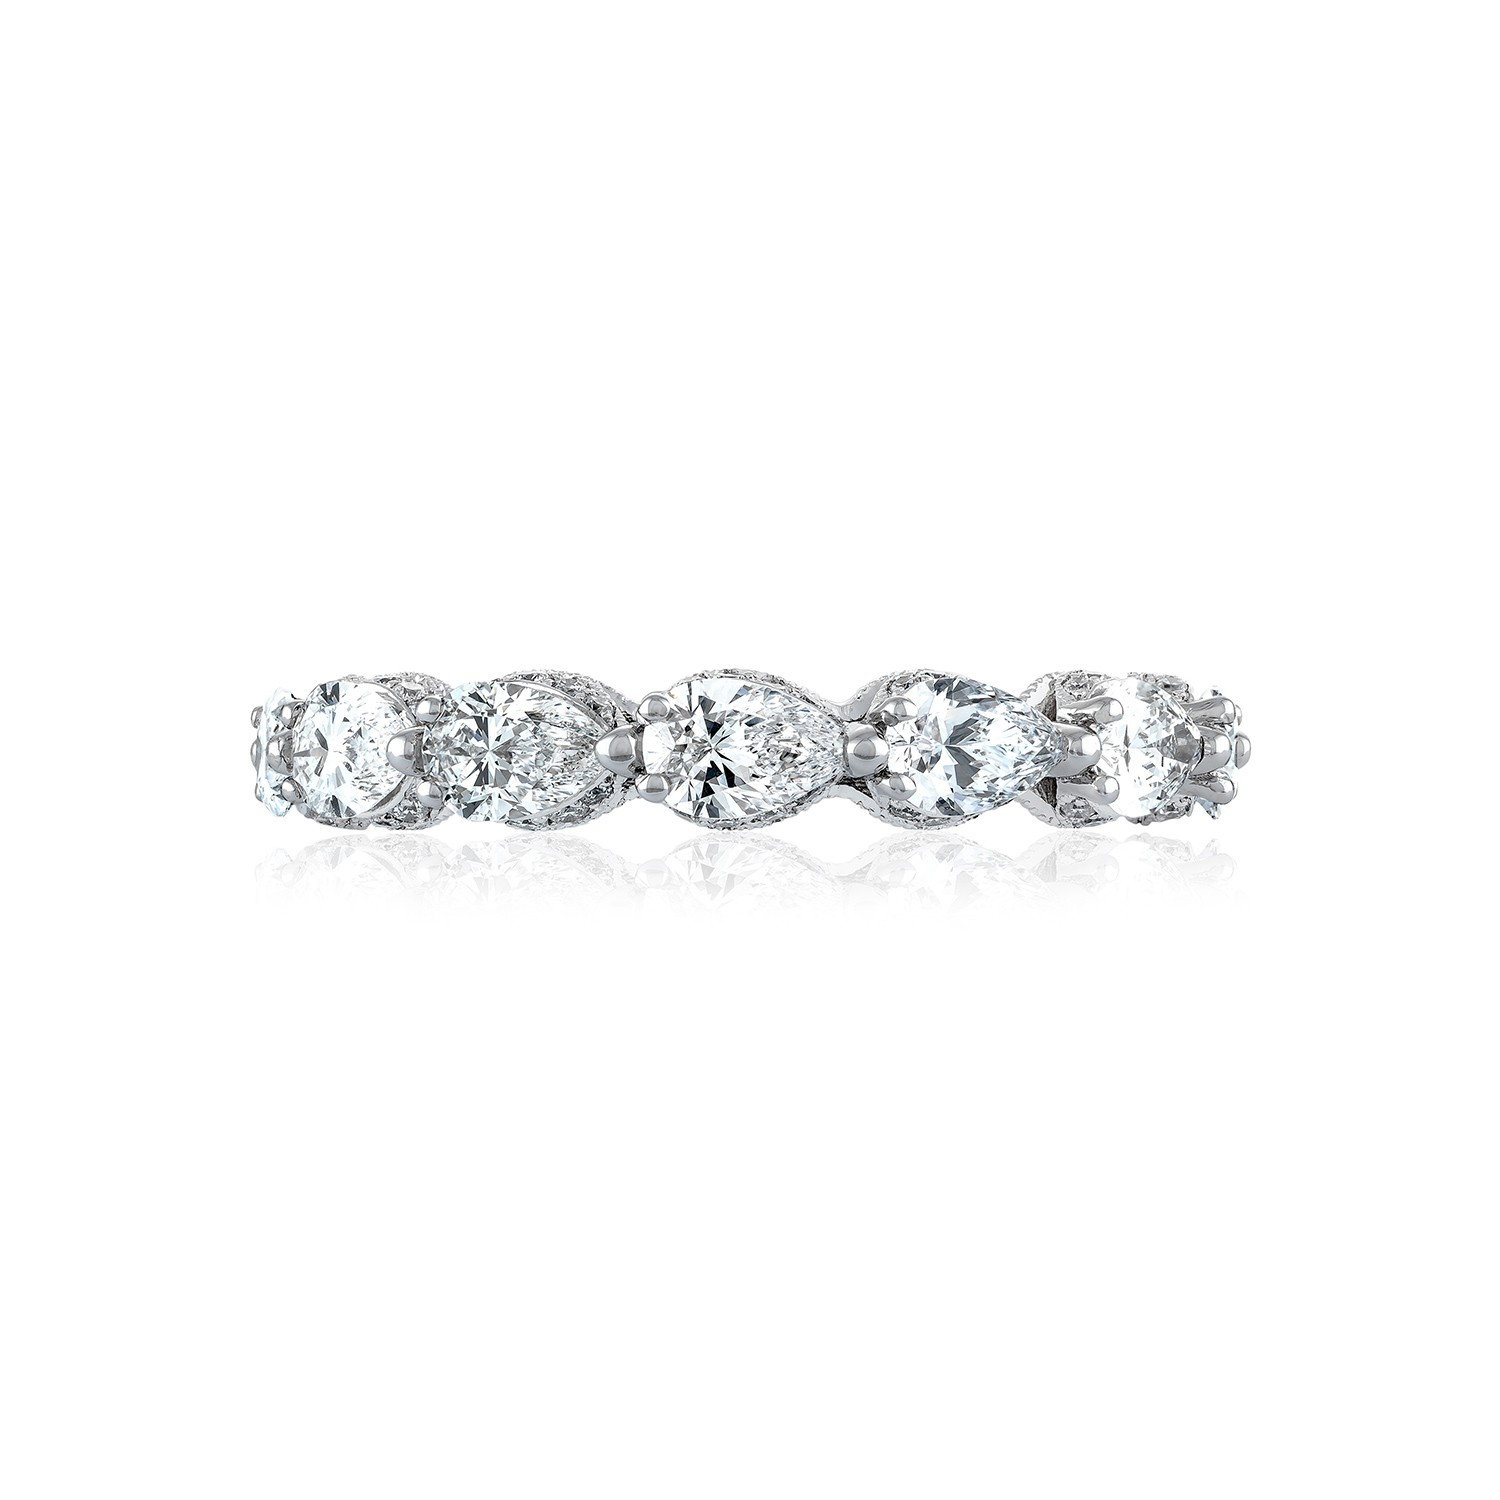 tacori wedding bands tacori wedding band Tacori RoyalT HT Pear Shape Diamond Wedding Band